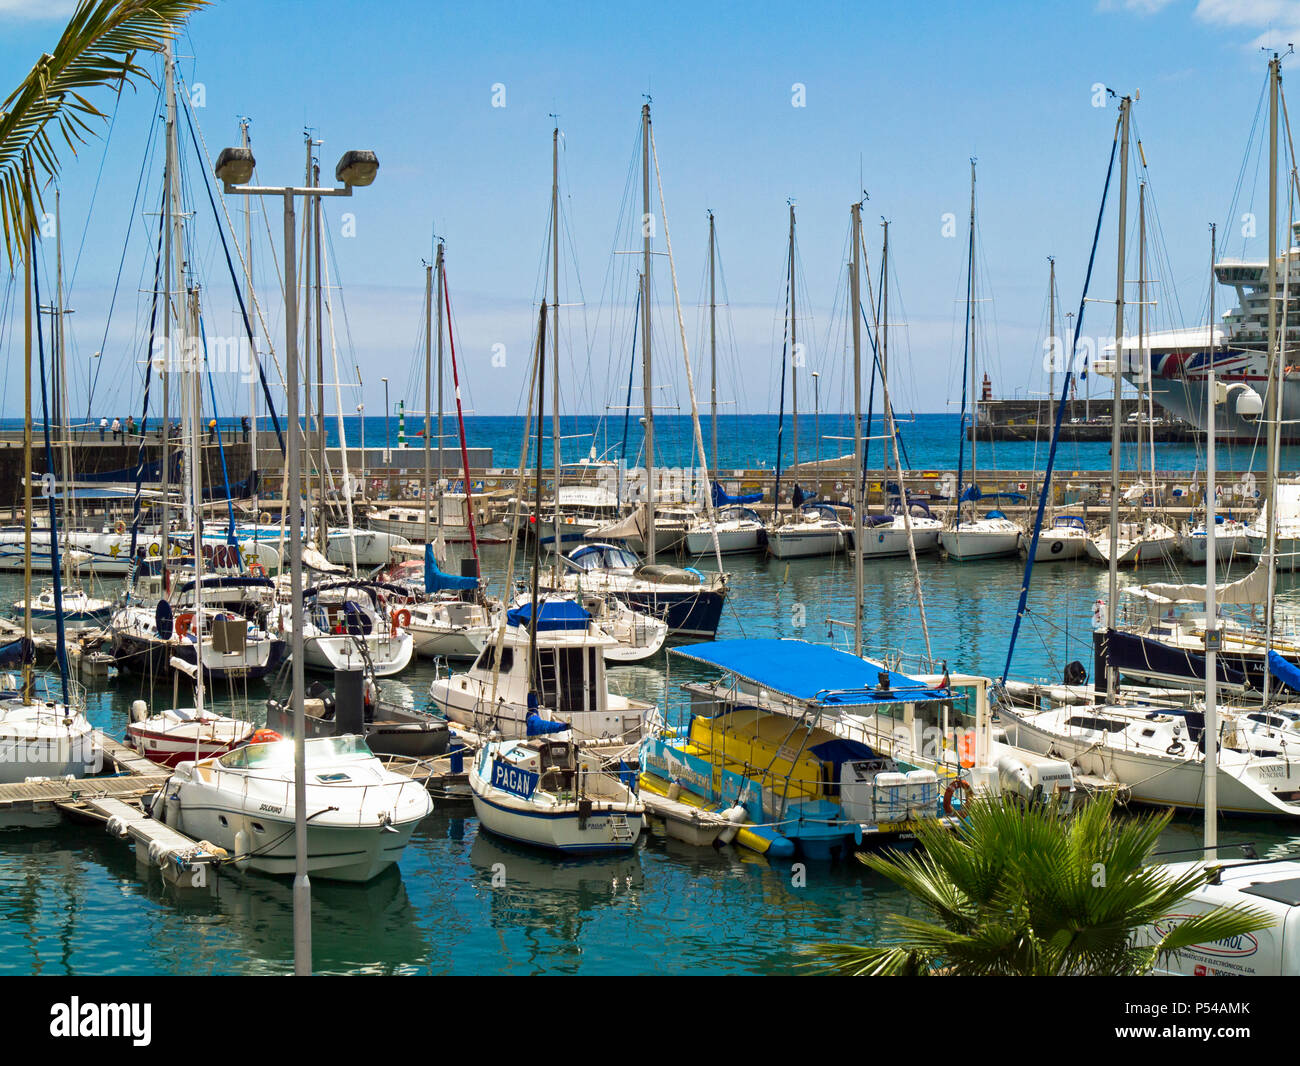 yachts in Funchal marina, Madeira with P&O cruise lines Azura in the background - Stock Image